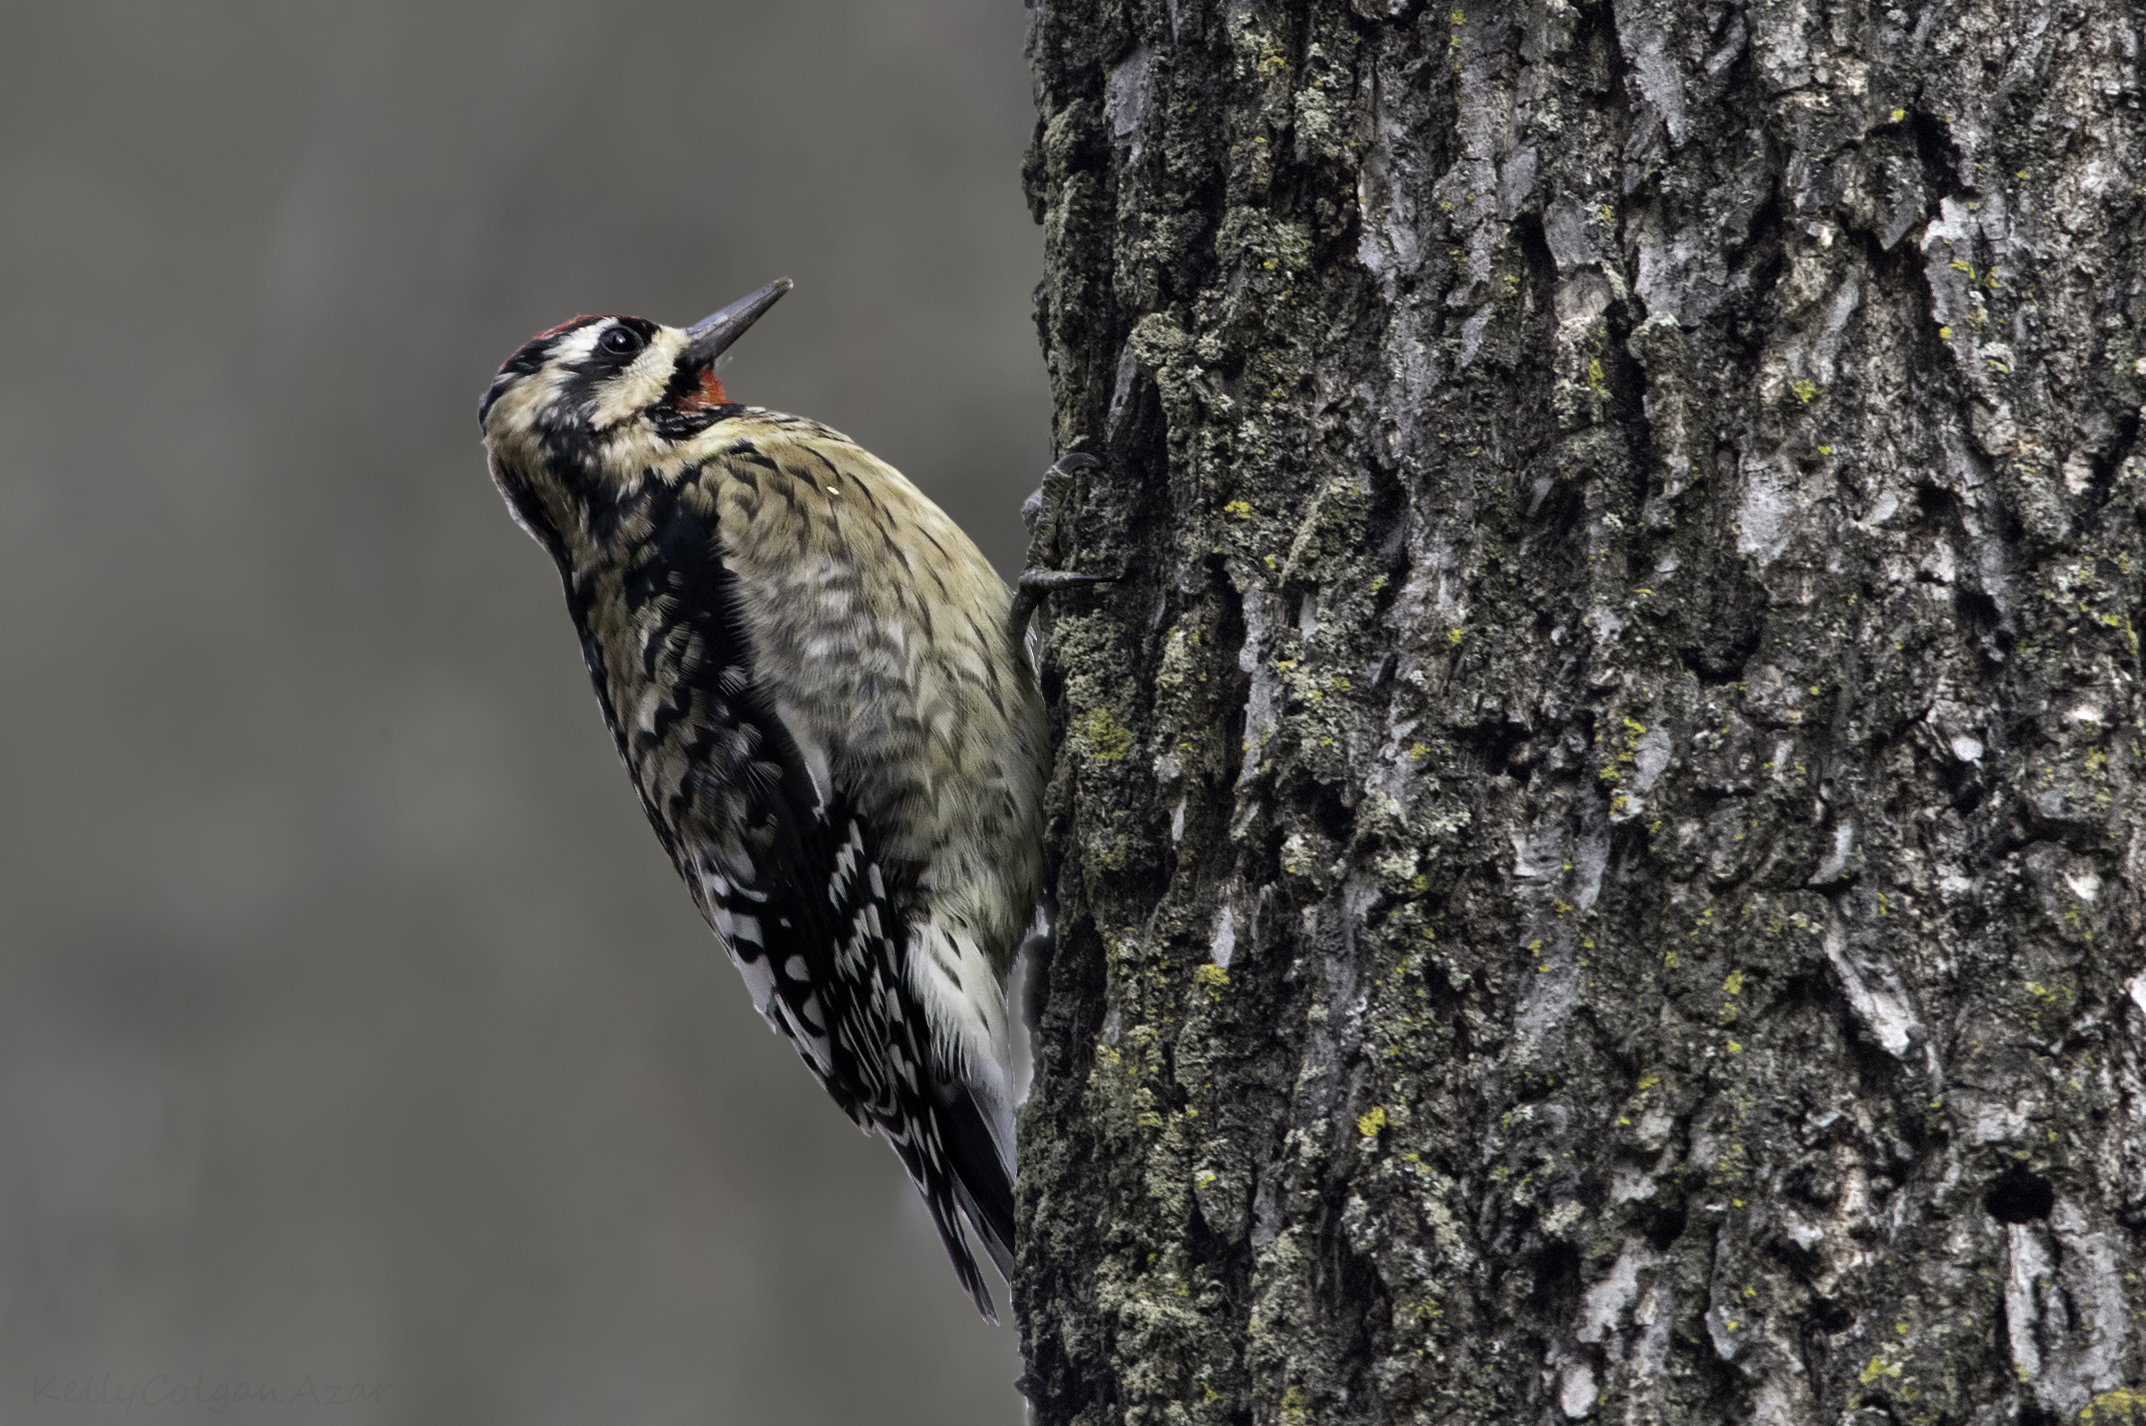 Yellow-bellied sapsucker, photo by Kelly Colgan Azar